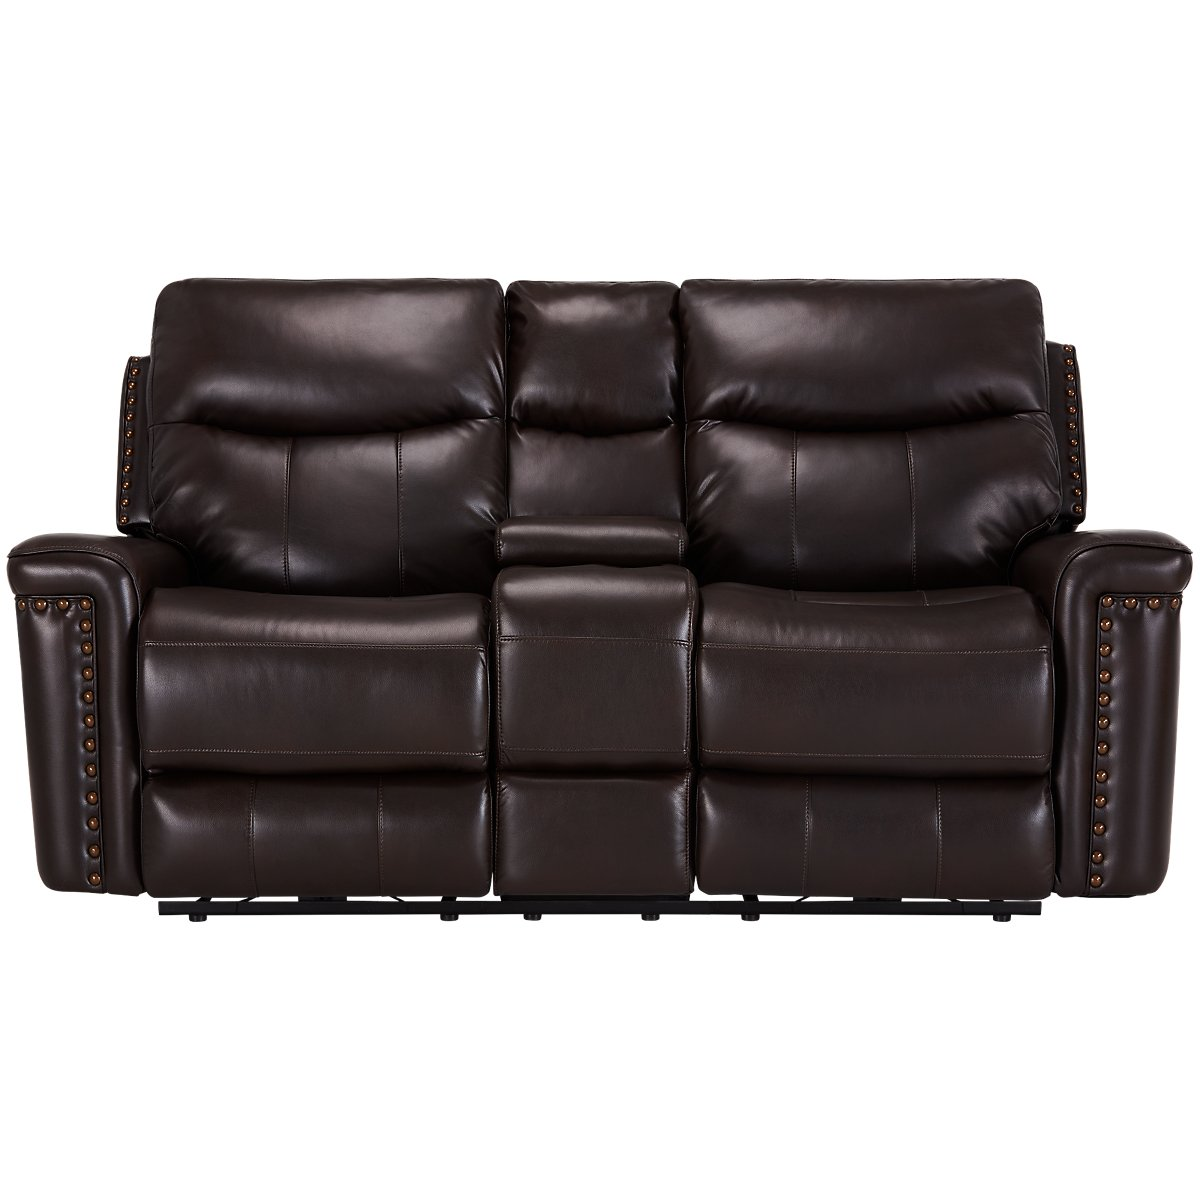 City furniture wallace dark brown microfiber power reclining living room Brown microfiber couch and loveseat